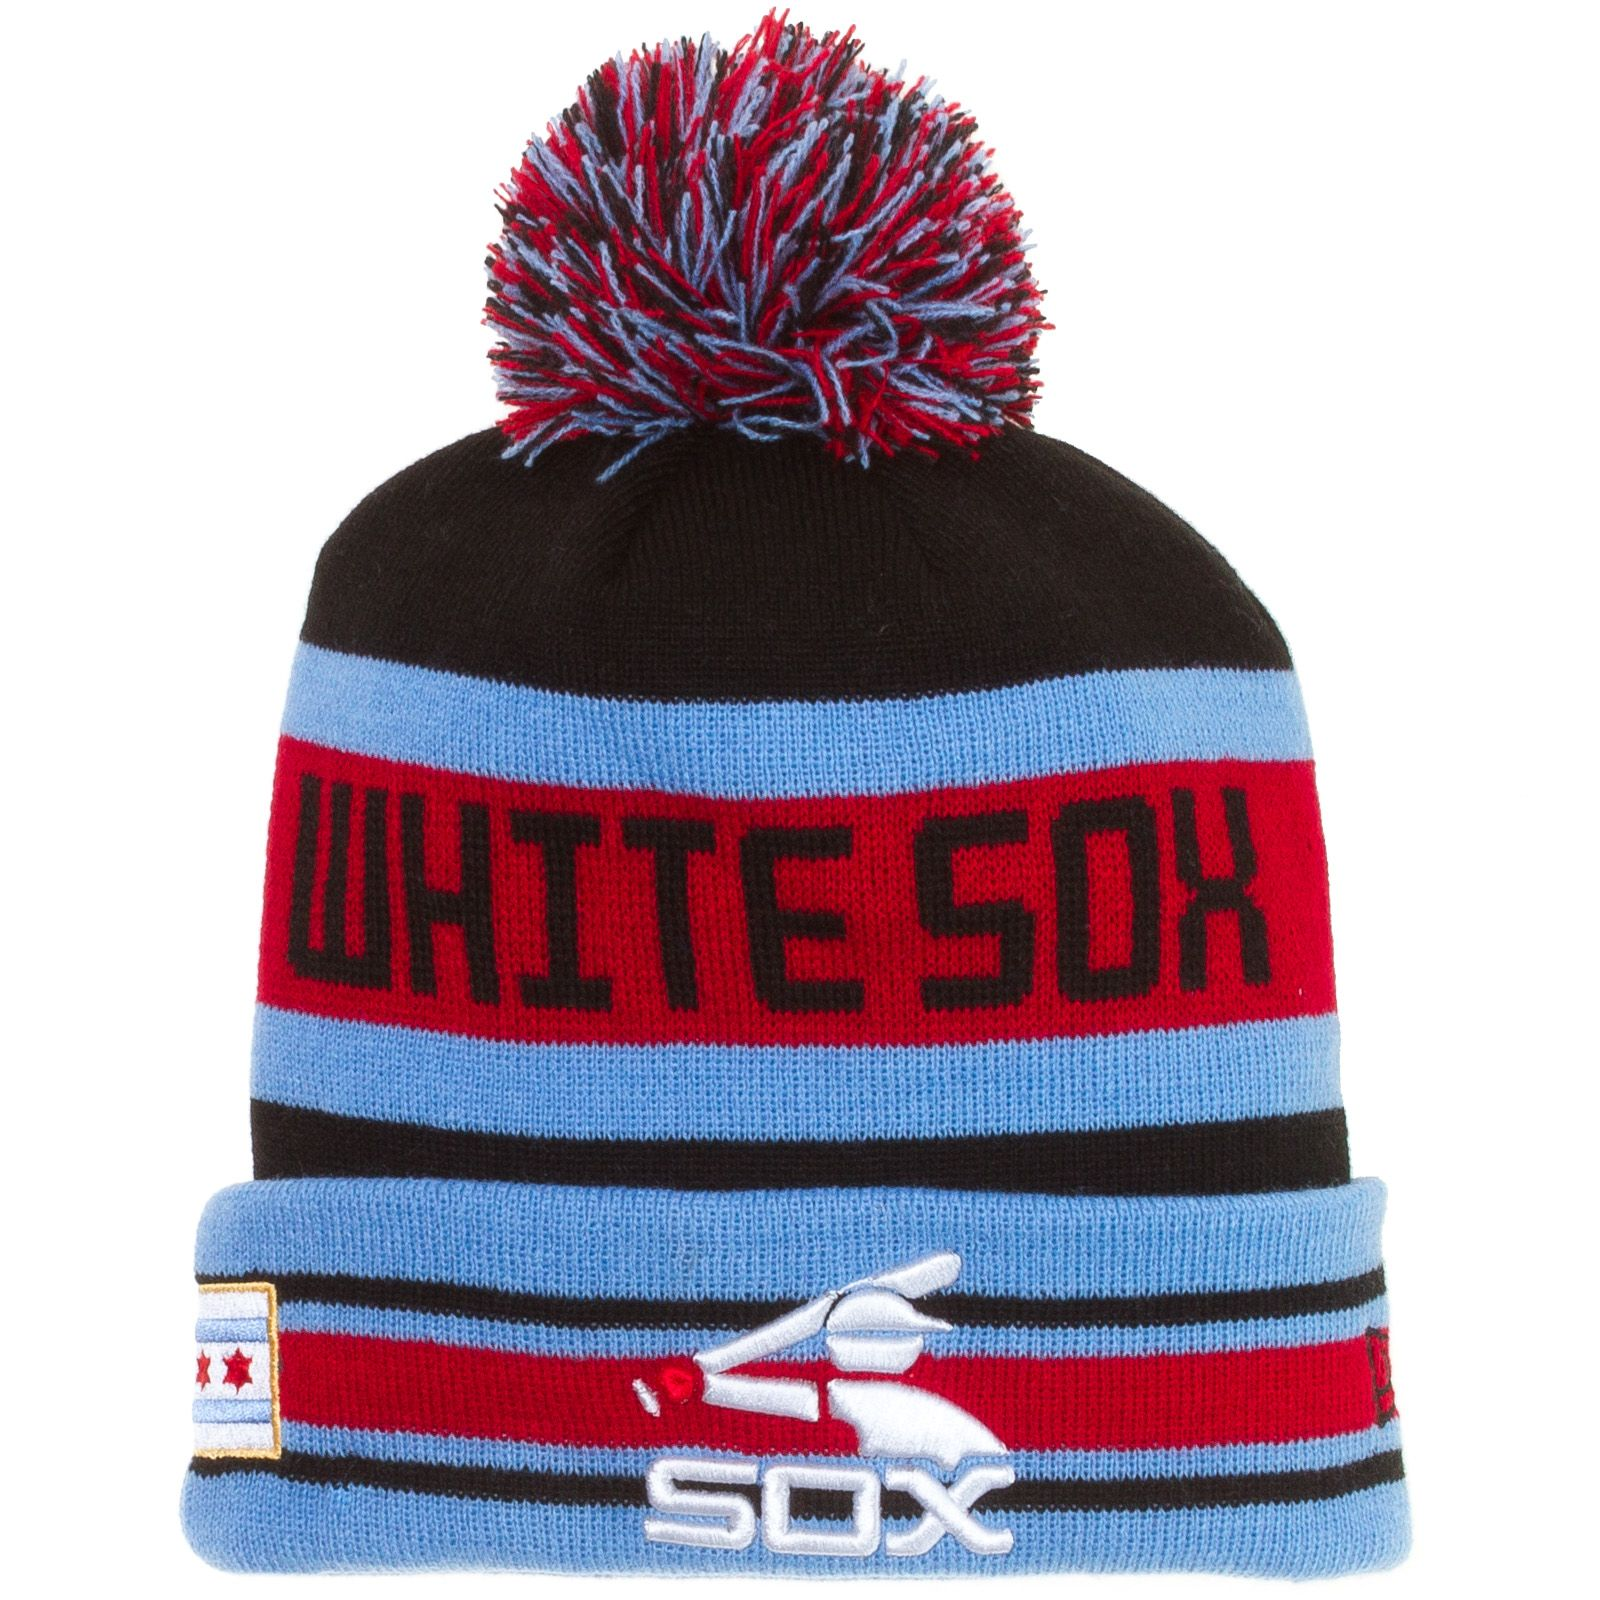 Chicago White Sox Black, Red, and Blue Double Logo Chicago Flag Cuffed Pom Knit Hat by New Era #Chicago #WhiteSox #ChicagoWhiteSox